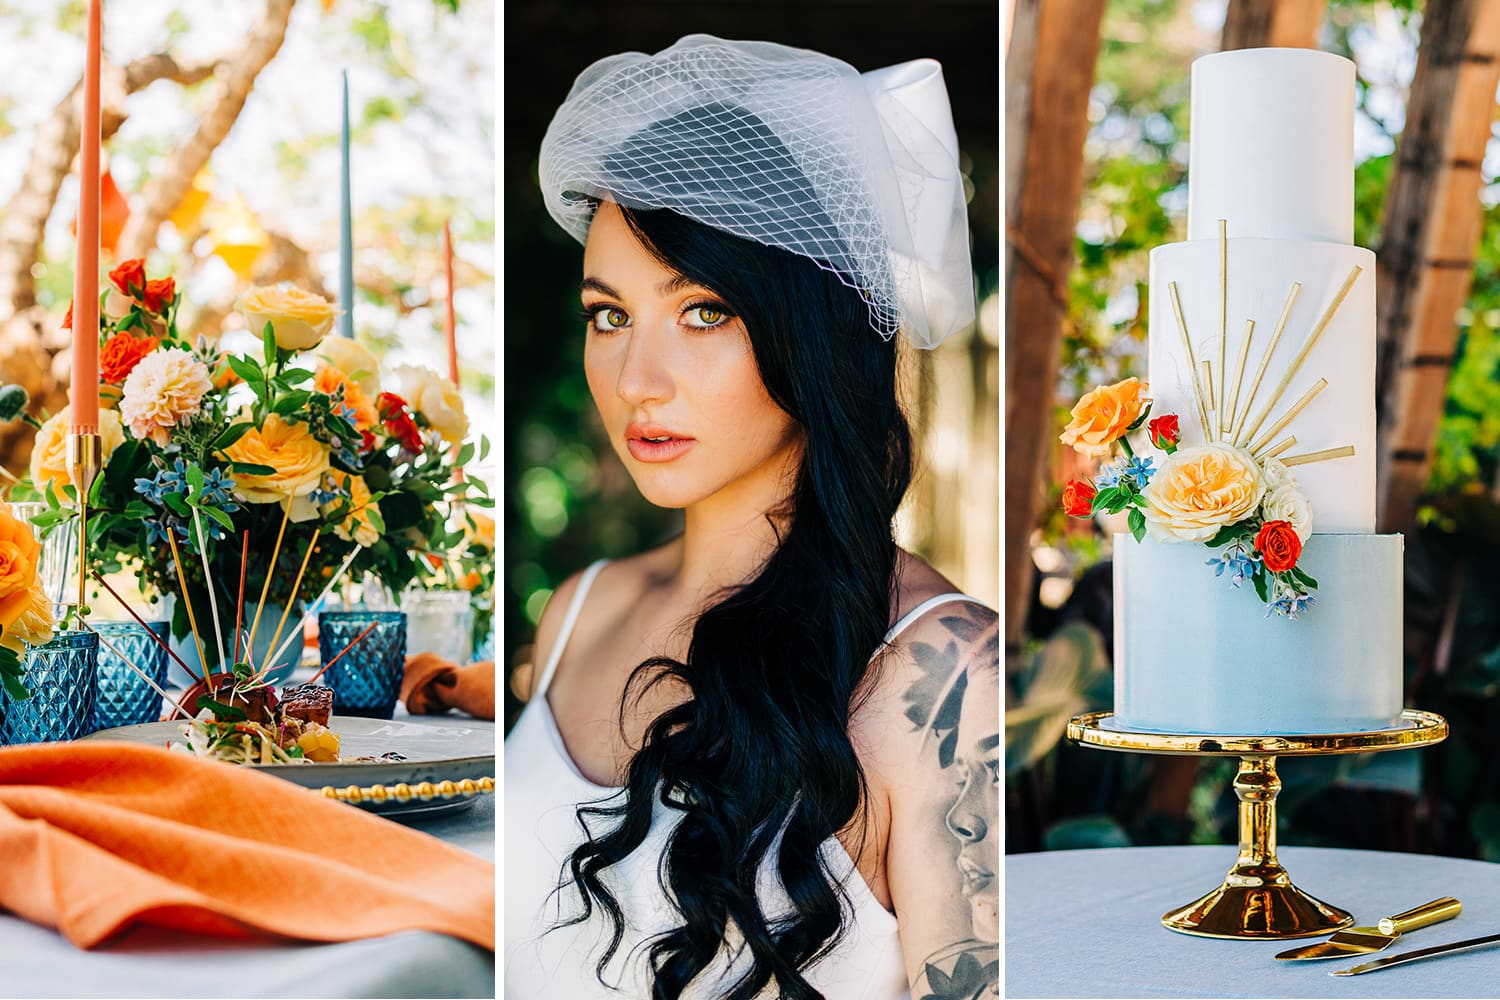 Bright Mid-Century Summer Wedding Inspiration with Sunburst Details